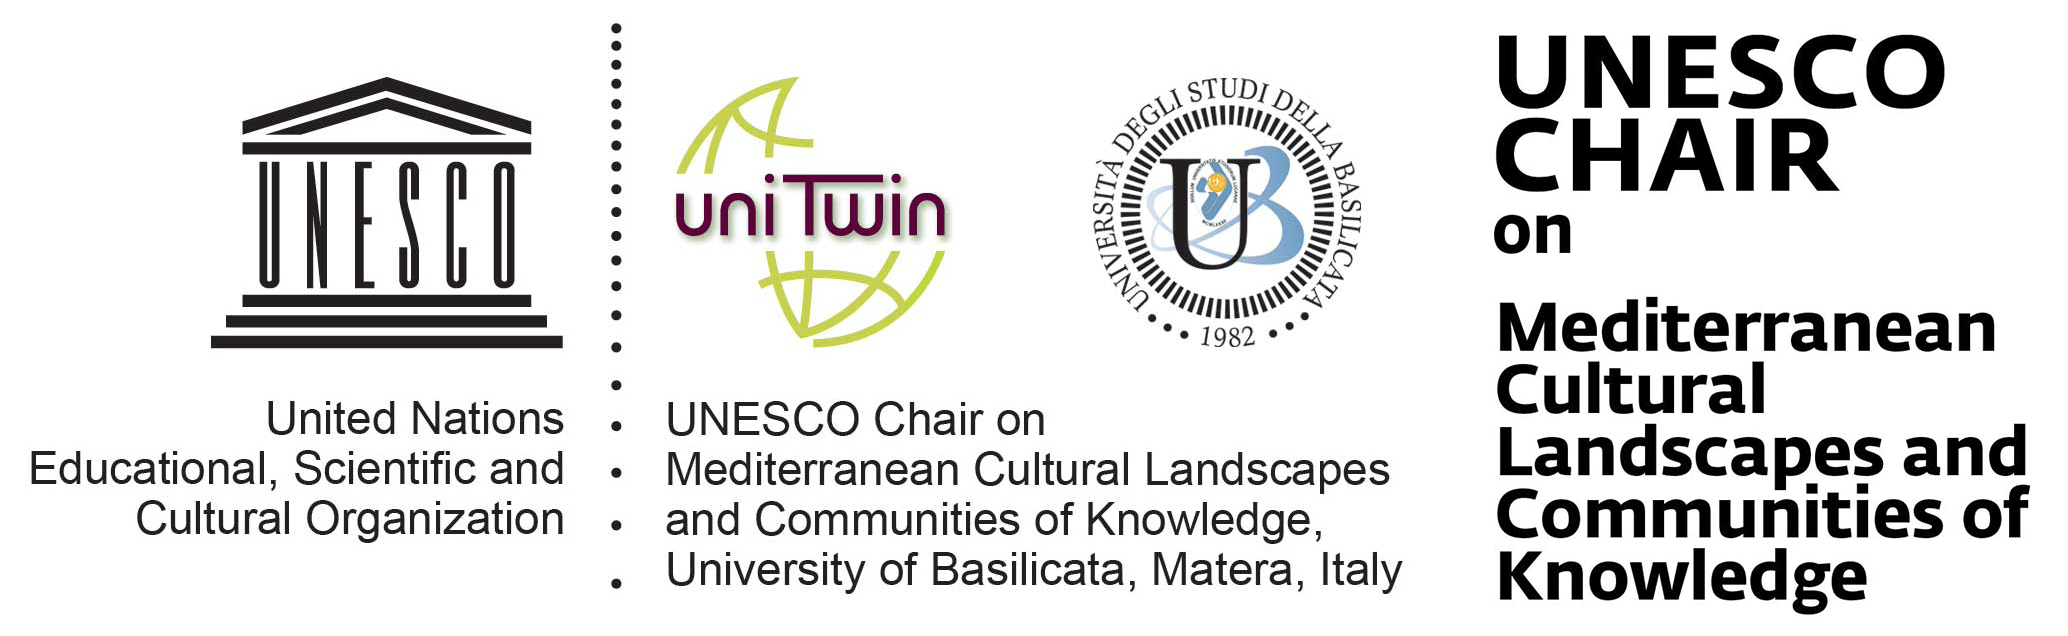 Matera UNESCO Chair